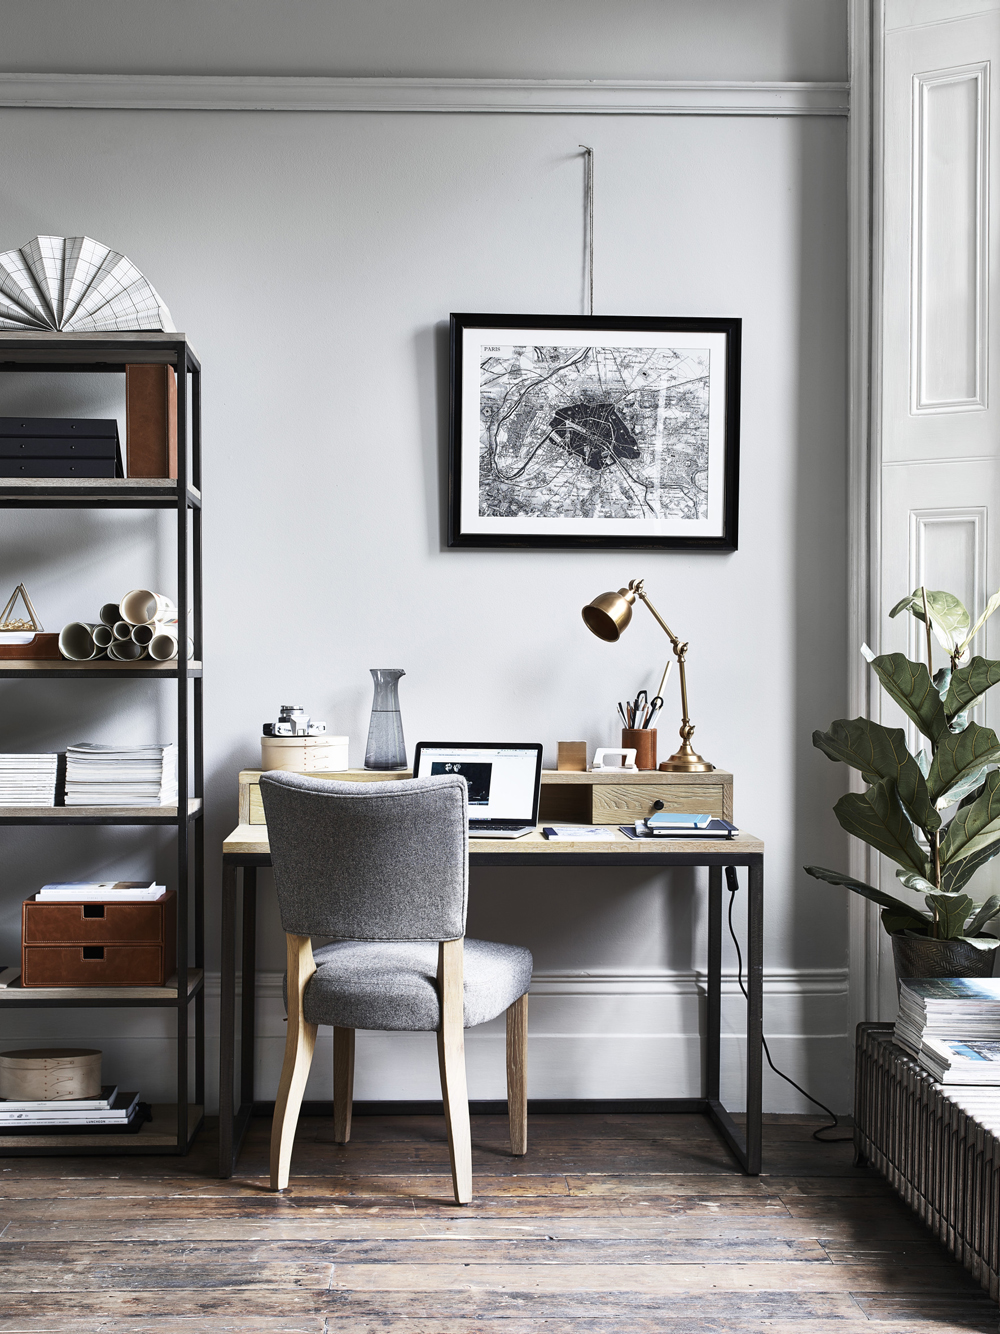 Today I'm sharing some of my favourite images from the Neptune collection, showcasing ways to create dramatic interior design inspiration